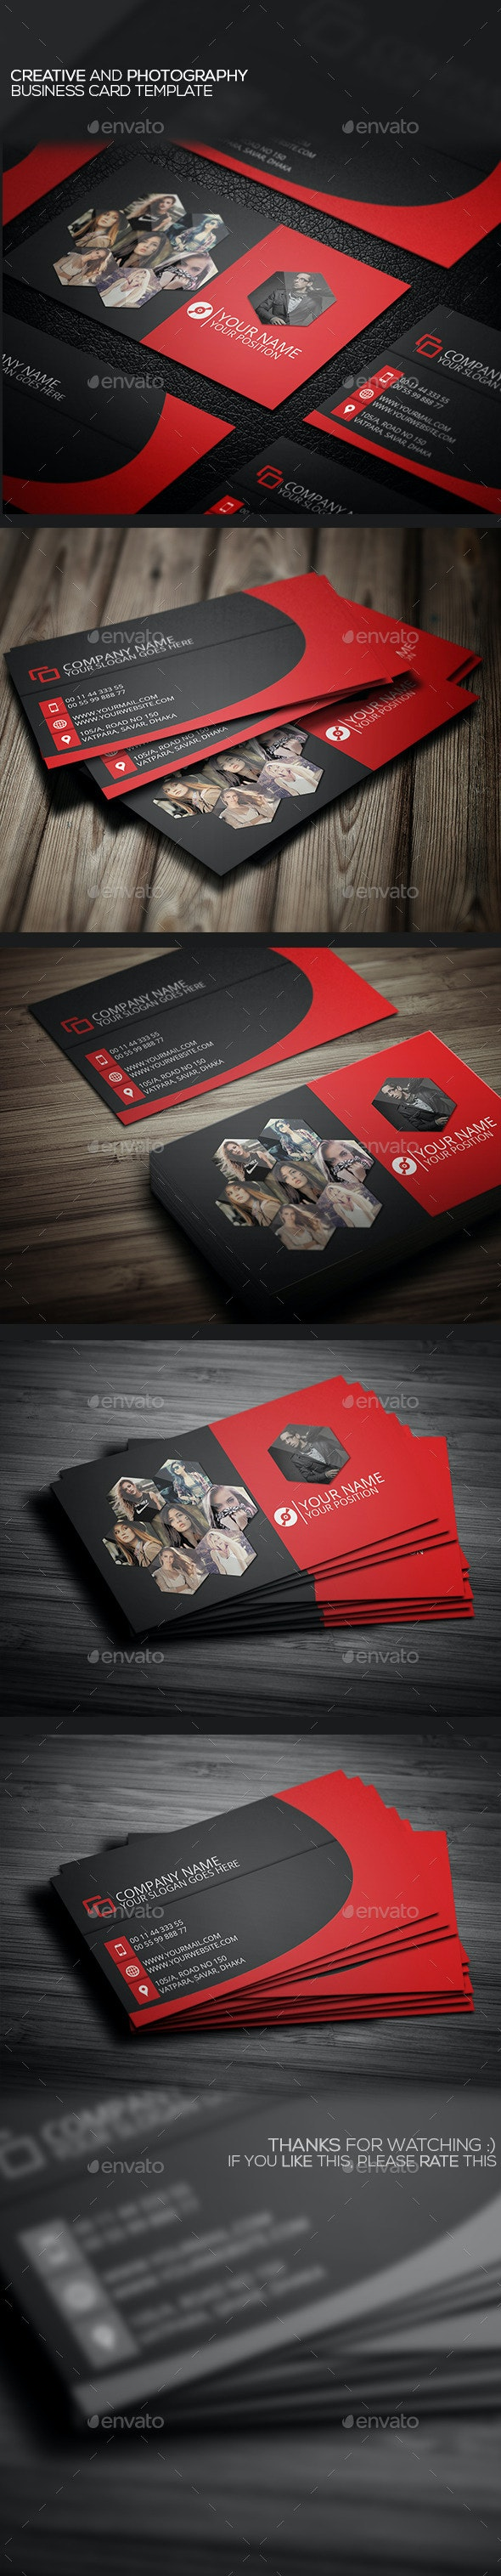 Creative And Photography Business Card Template - Creative Business Cards